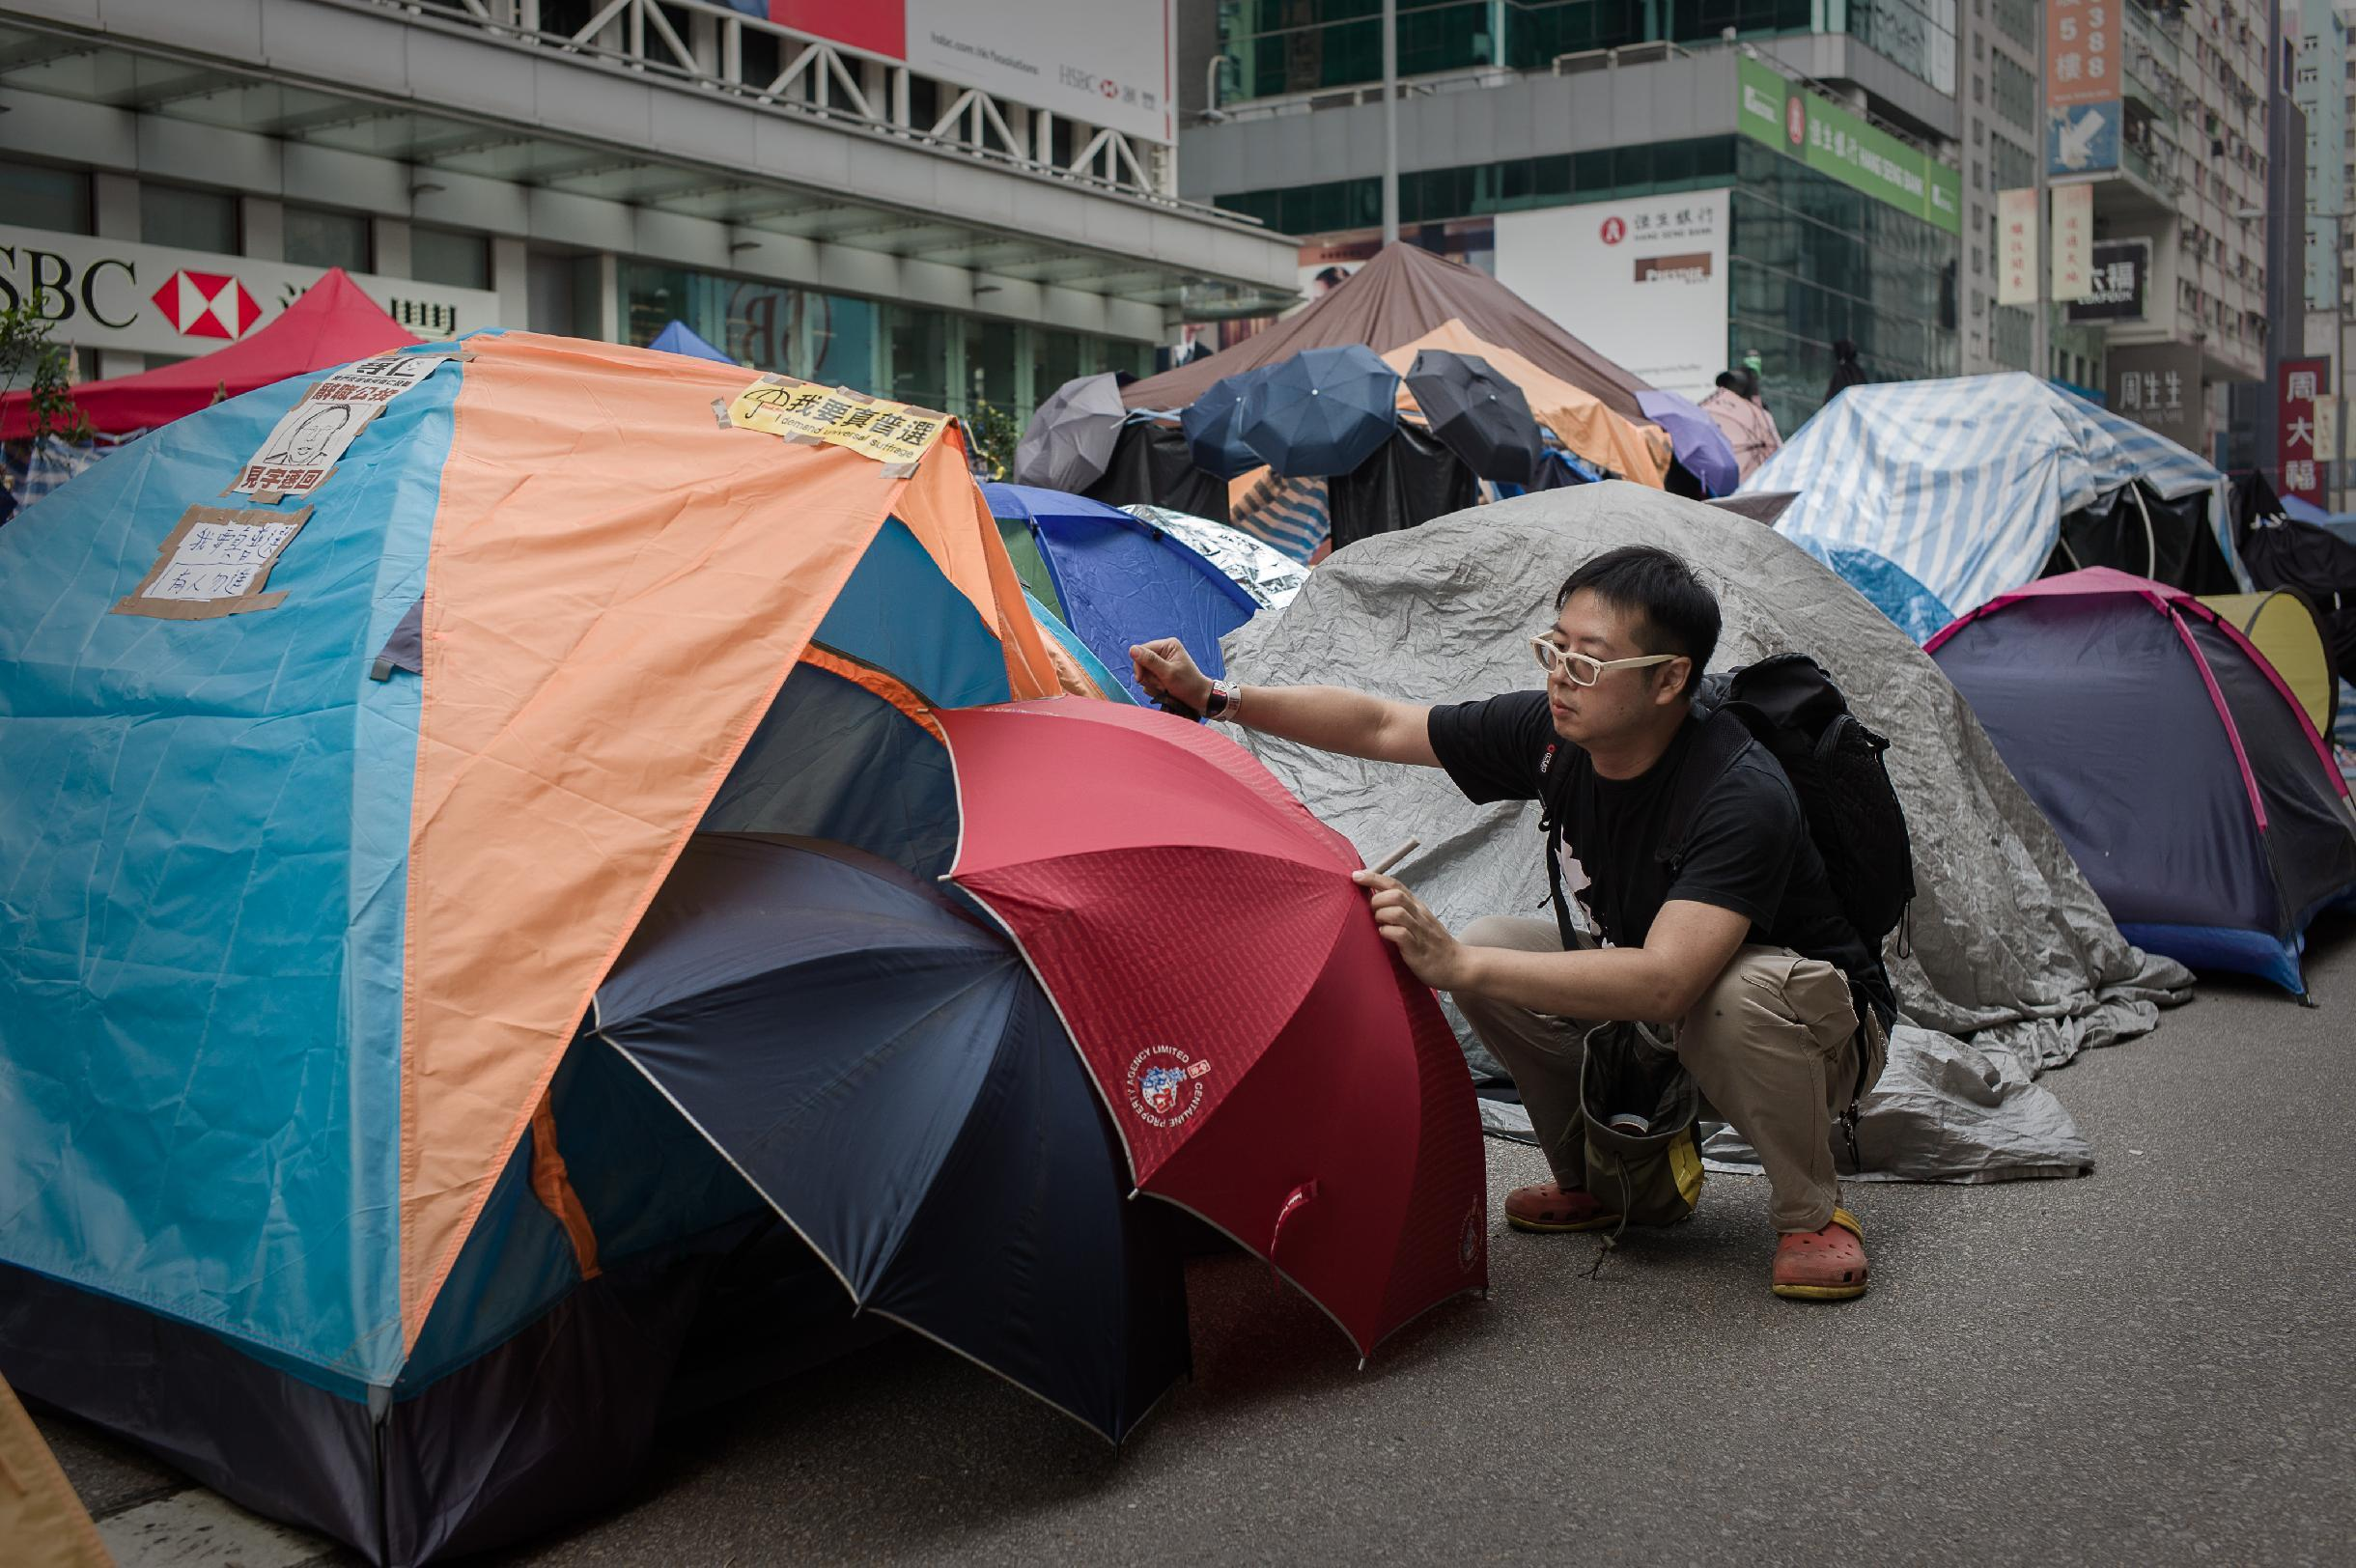 A pro-democracy protester adjusts umbrellas displayed by tents at a protest site in the Mongkok district of Hong Kong on November 12, 2014 (AFP Photo/Philippe Lopez)